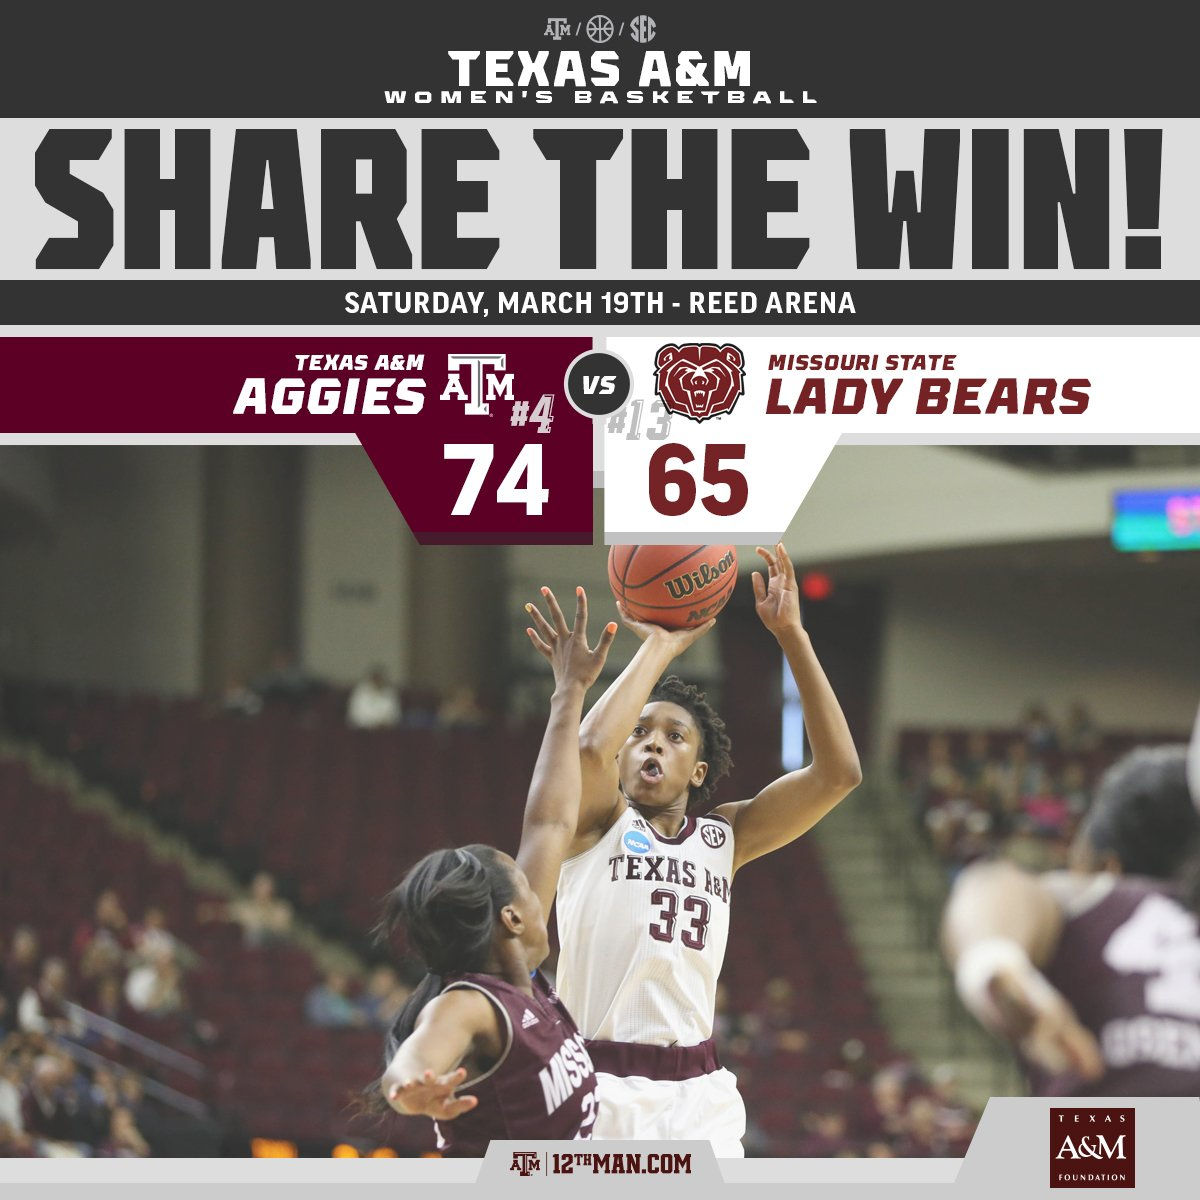 The Aggies defeat Missouri State in the first round! #RTtheWIN #12thMan  Pres. by @TXAMFoundation https://t.co/bES5Em8lDB